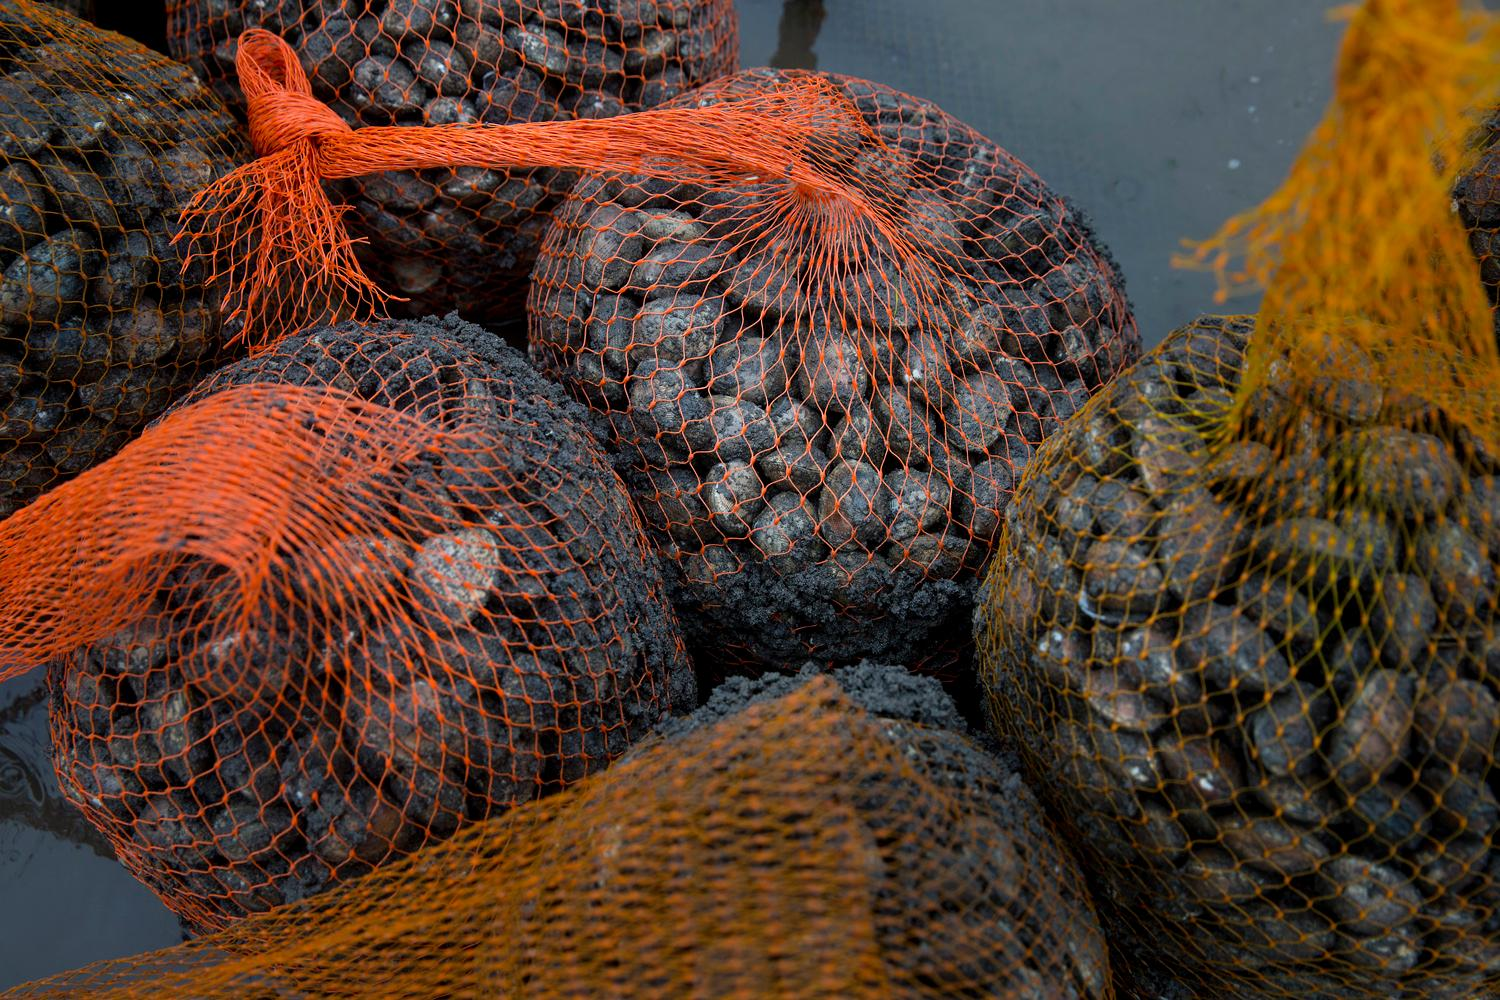 Hundreds of Manila clams are bagged and ready to be sold after being harvested in Samish Bay. (Sy Bean / Seattle Refined)